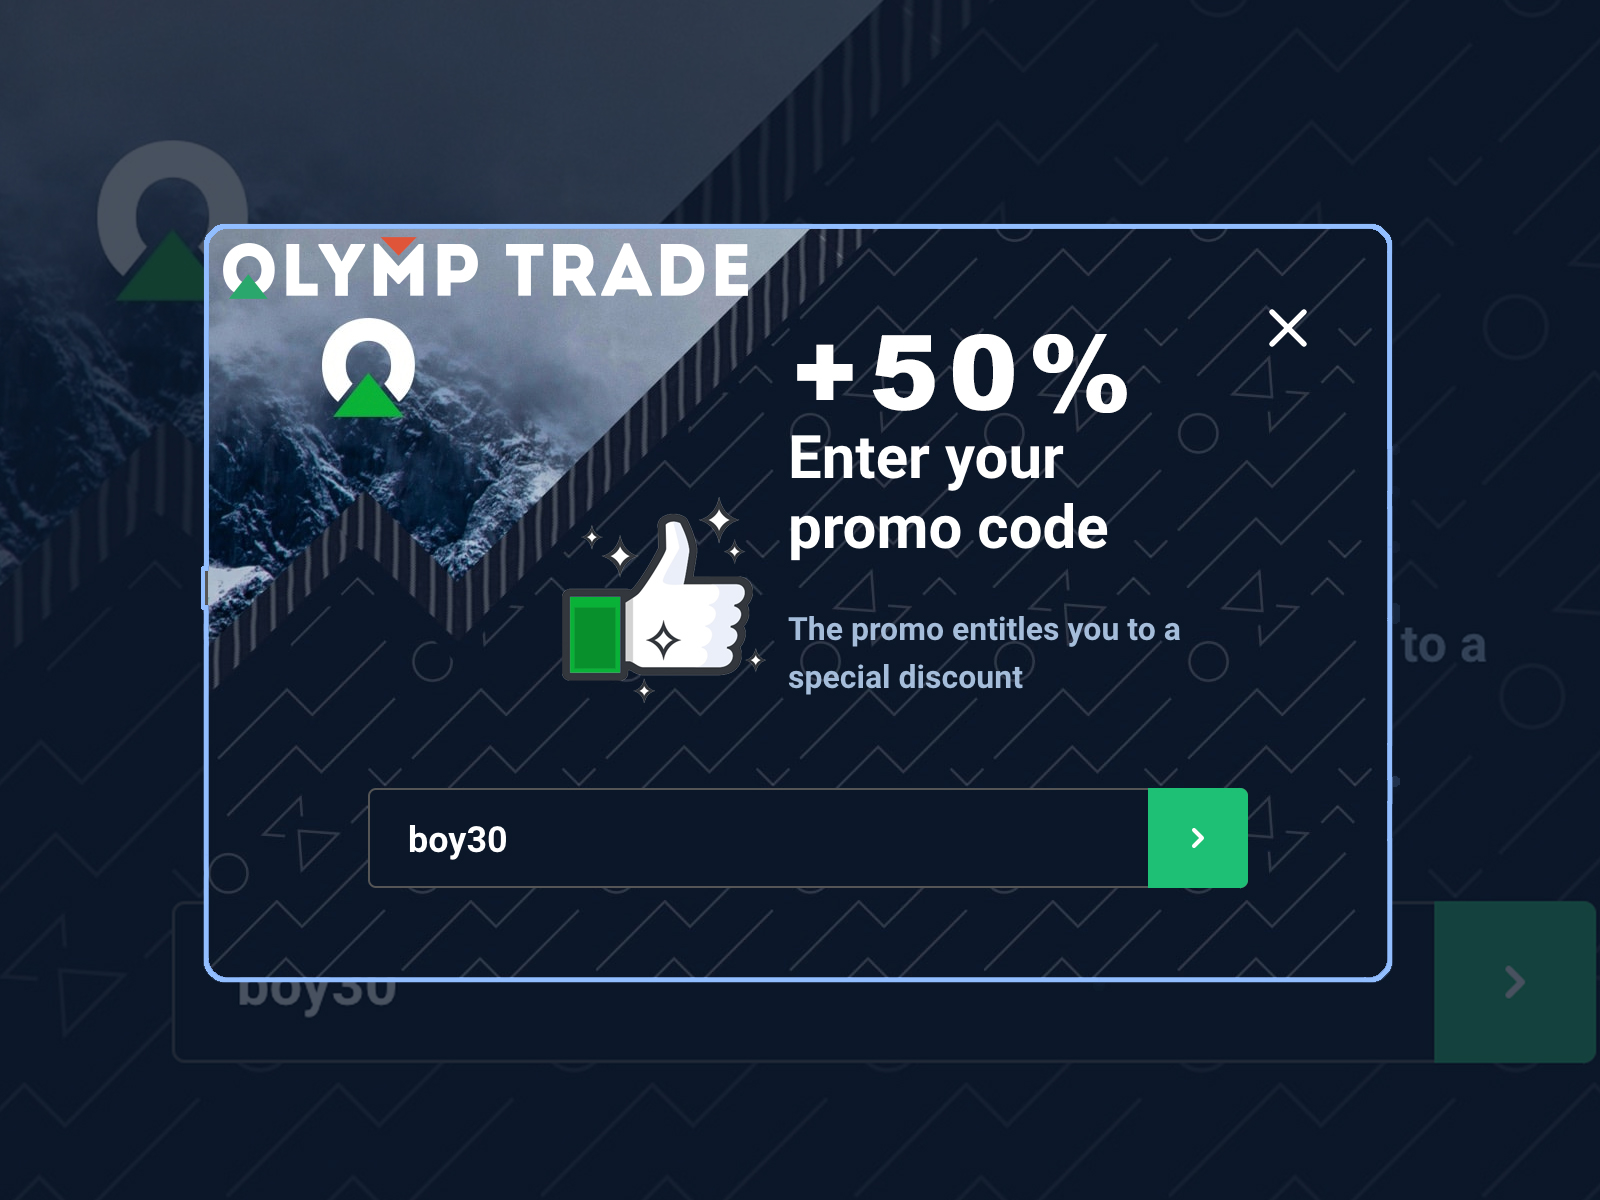 How to use promotion code up to 50% deposit money on Olymp Trade